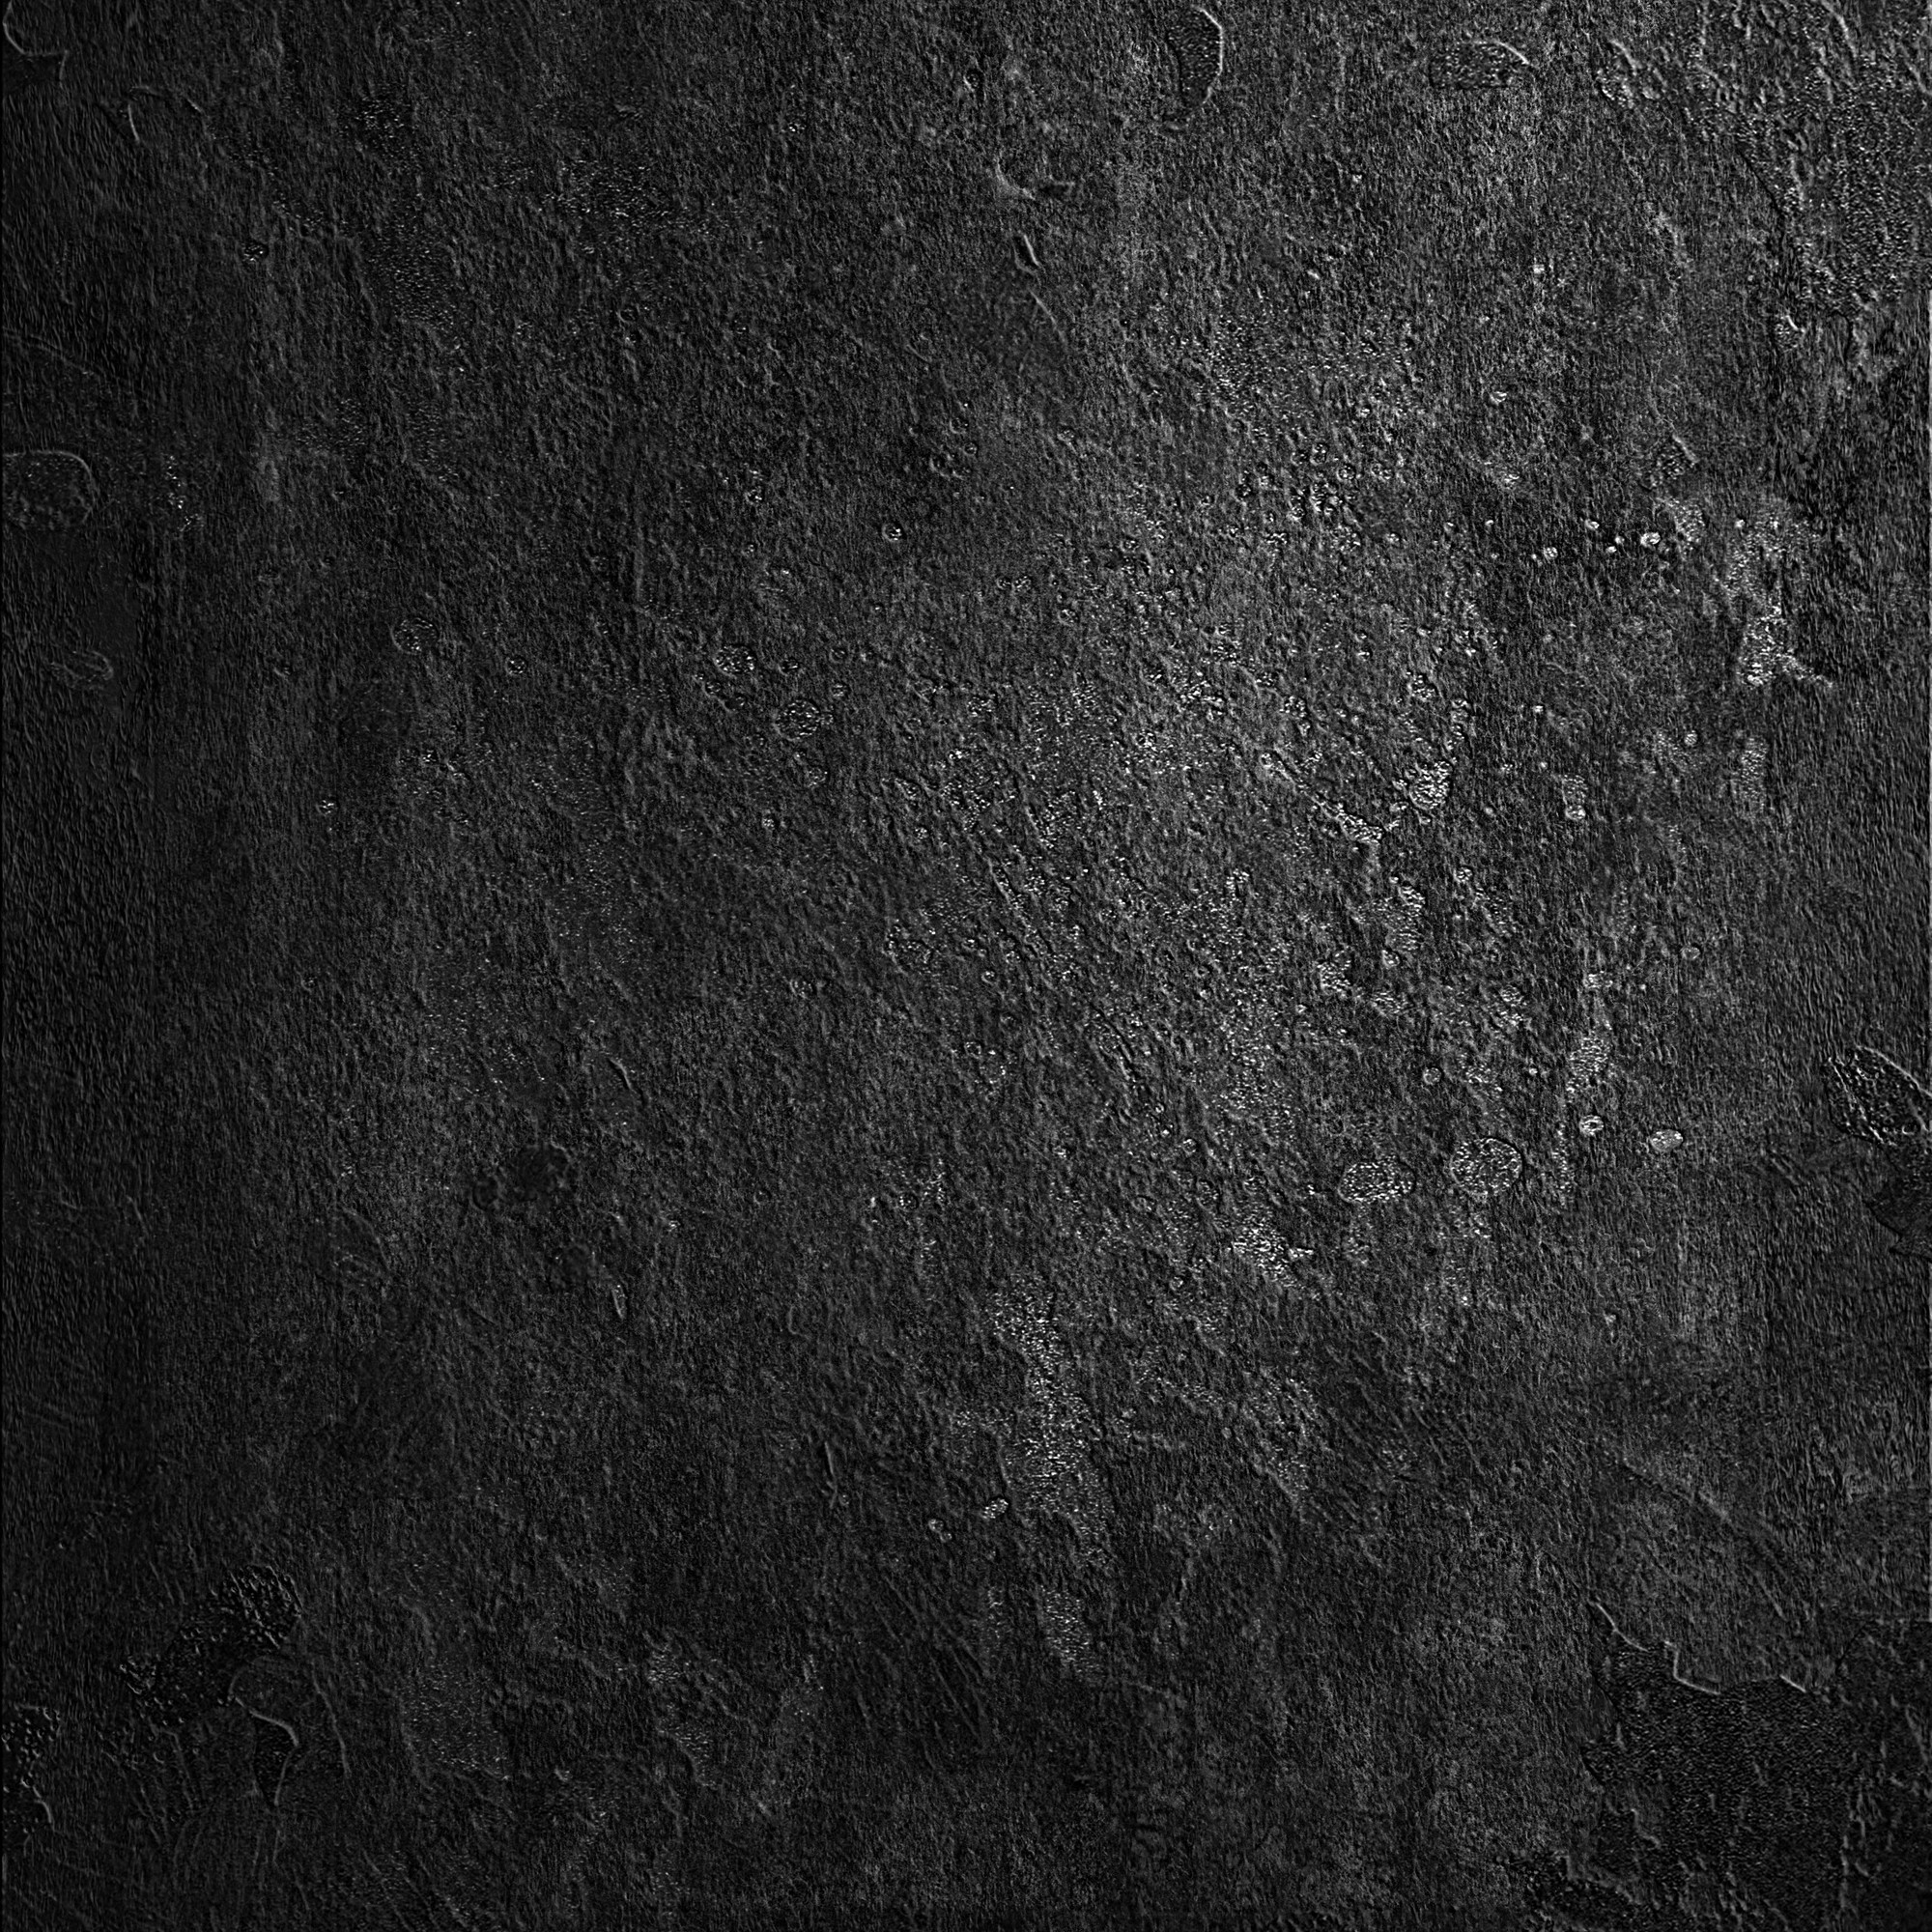 Black Textured Background Black white wallpaper 2000x2000